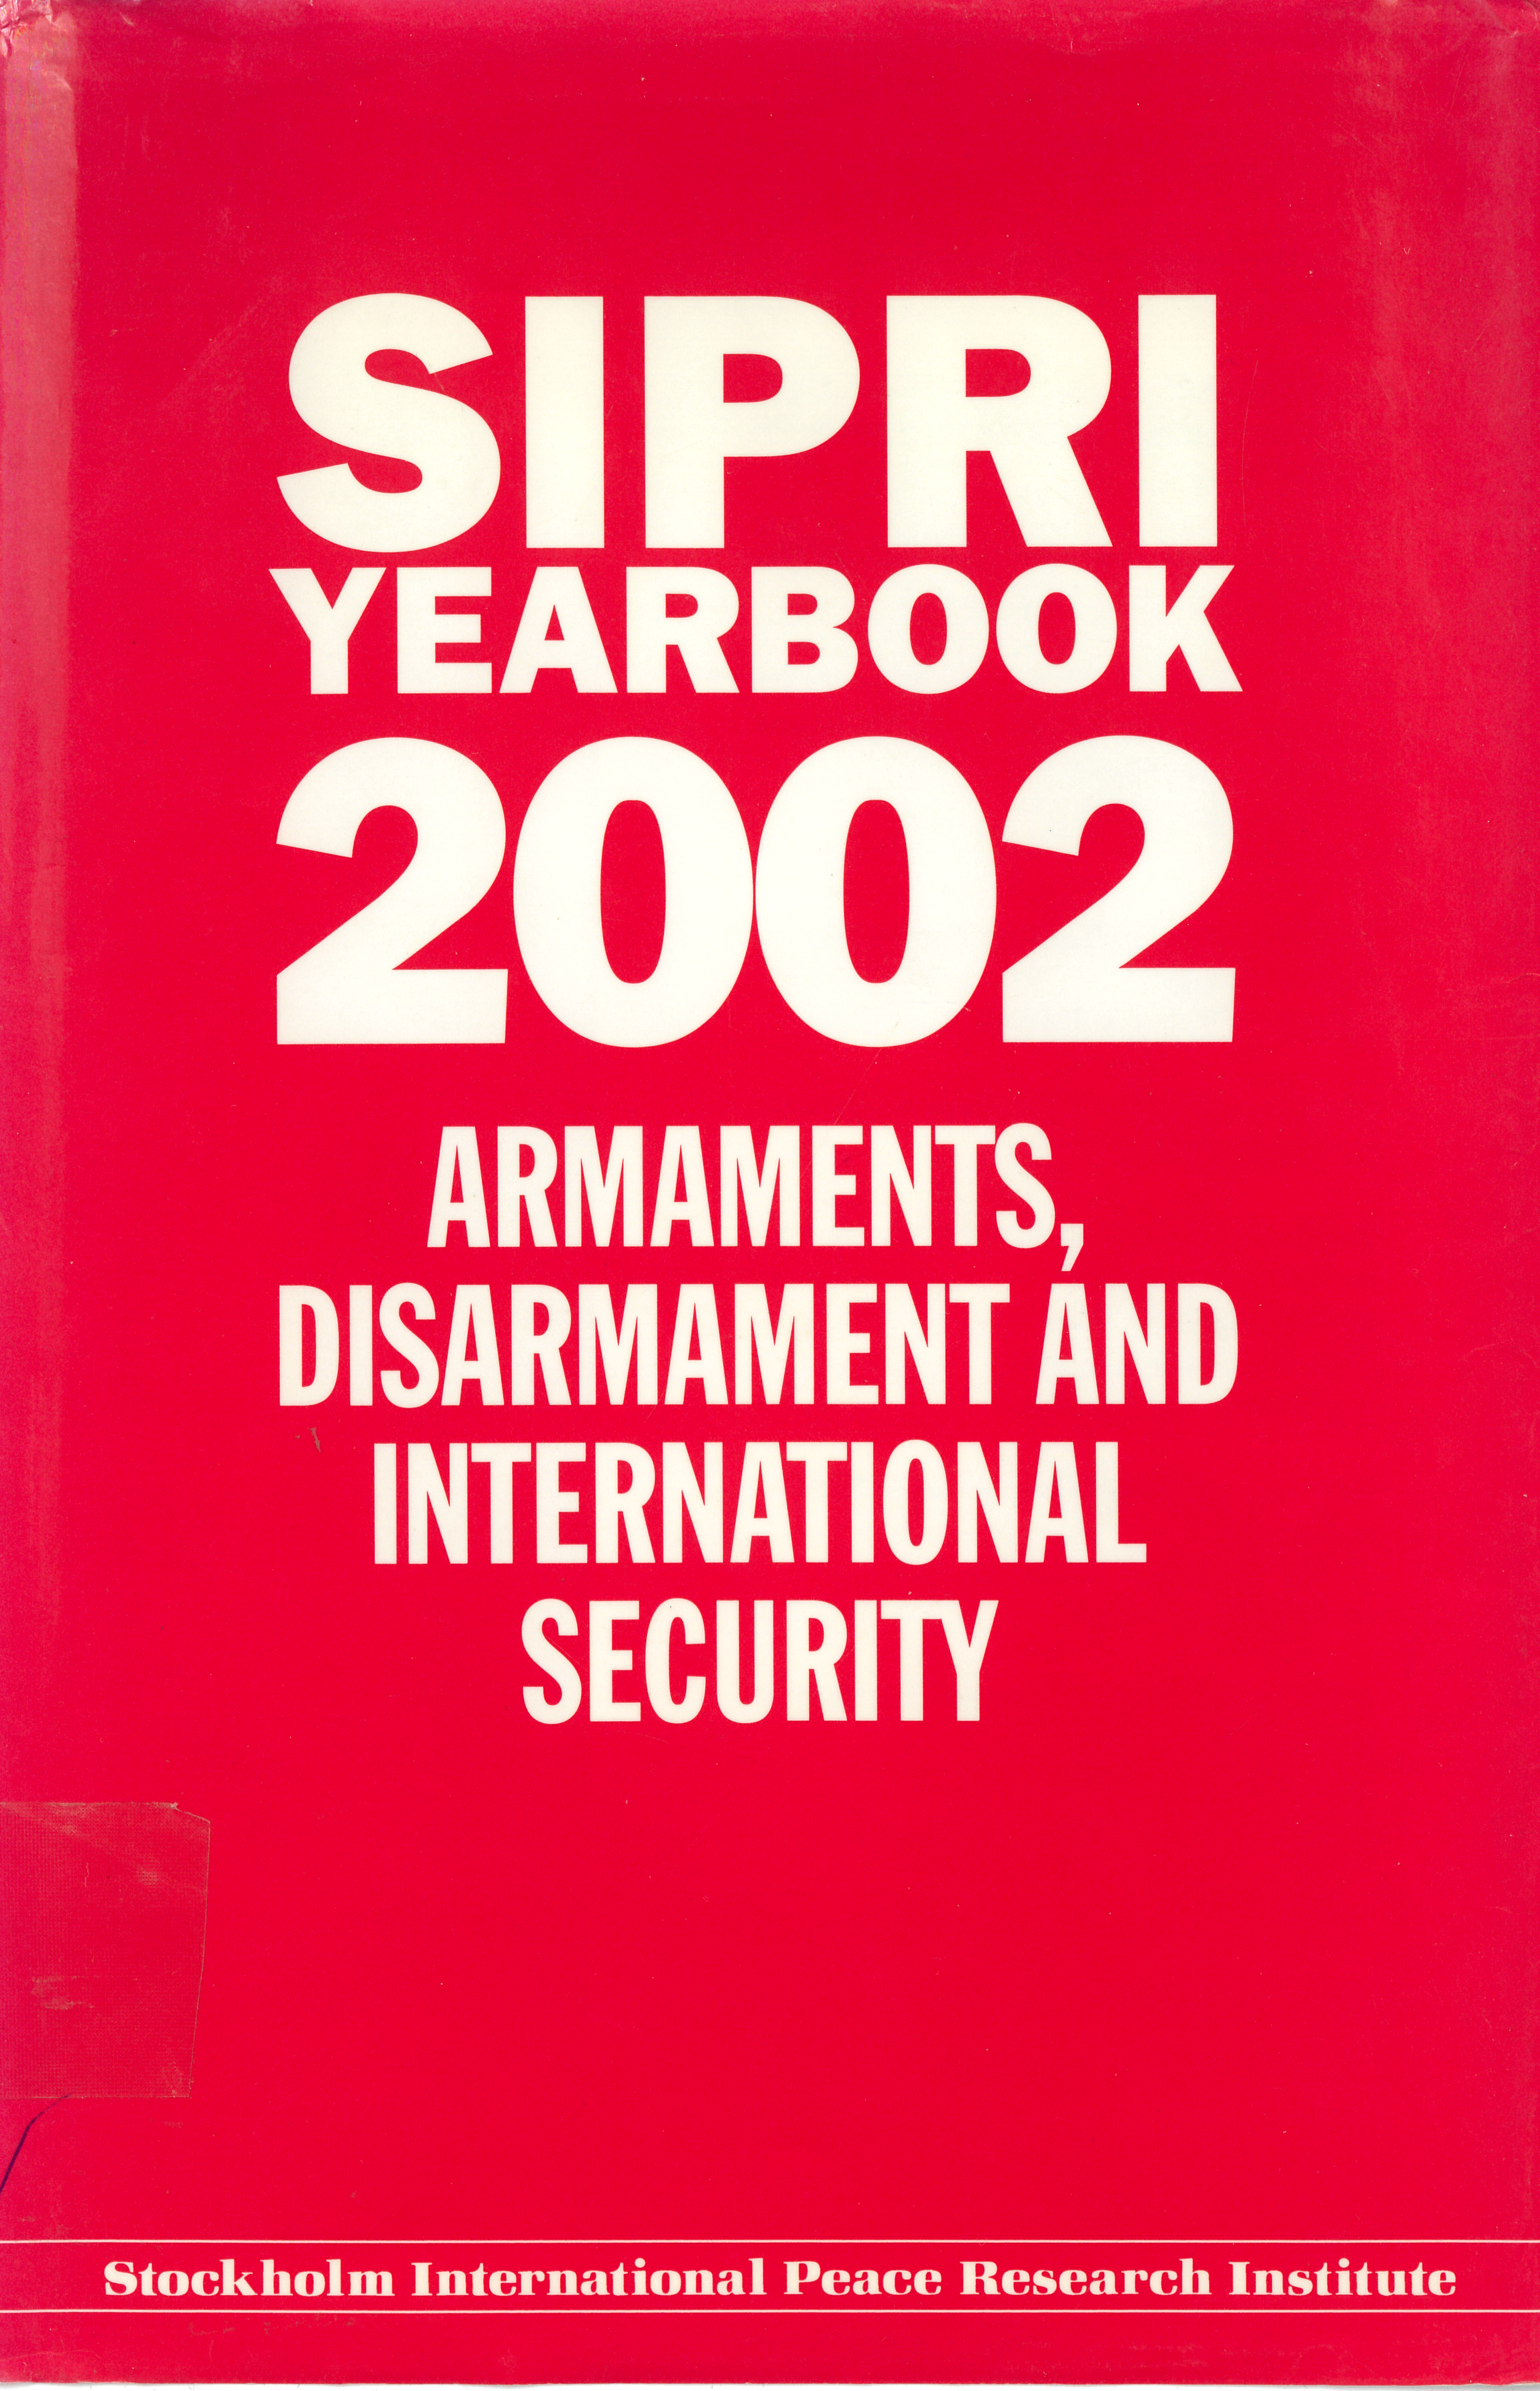 SIPRI Yearbook 2002 cover